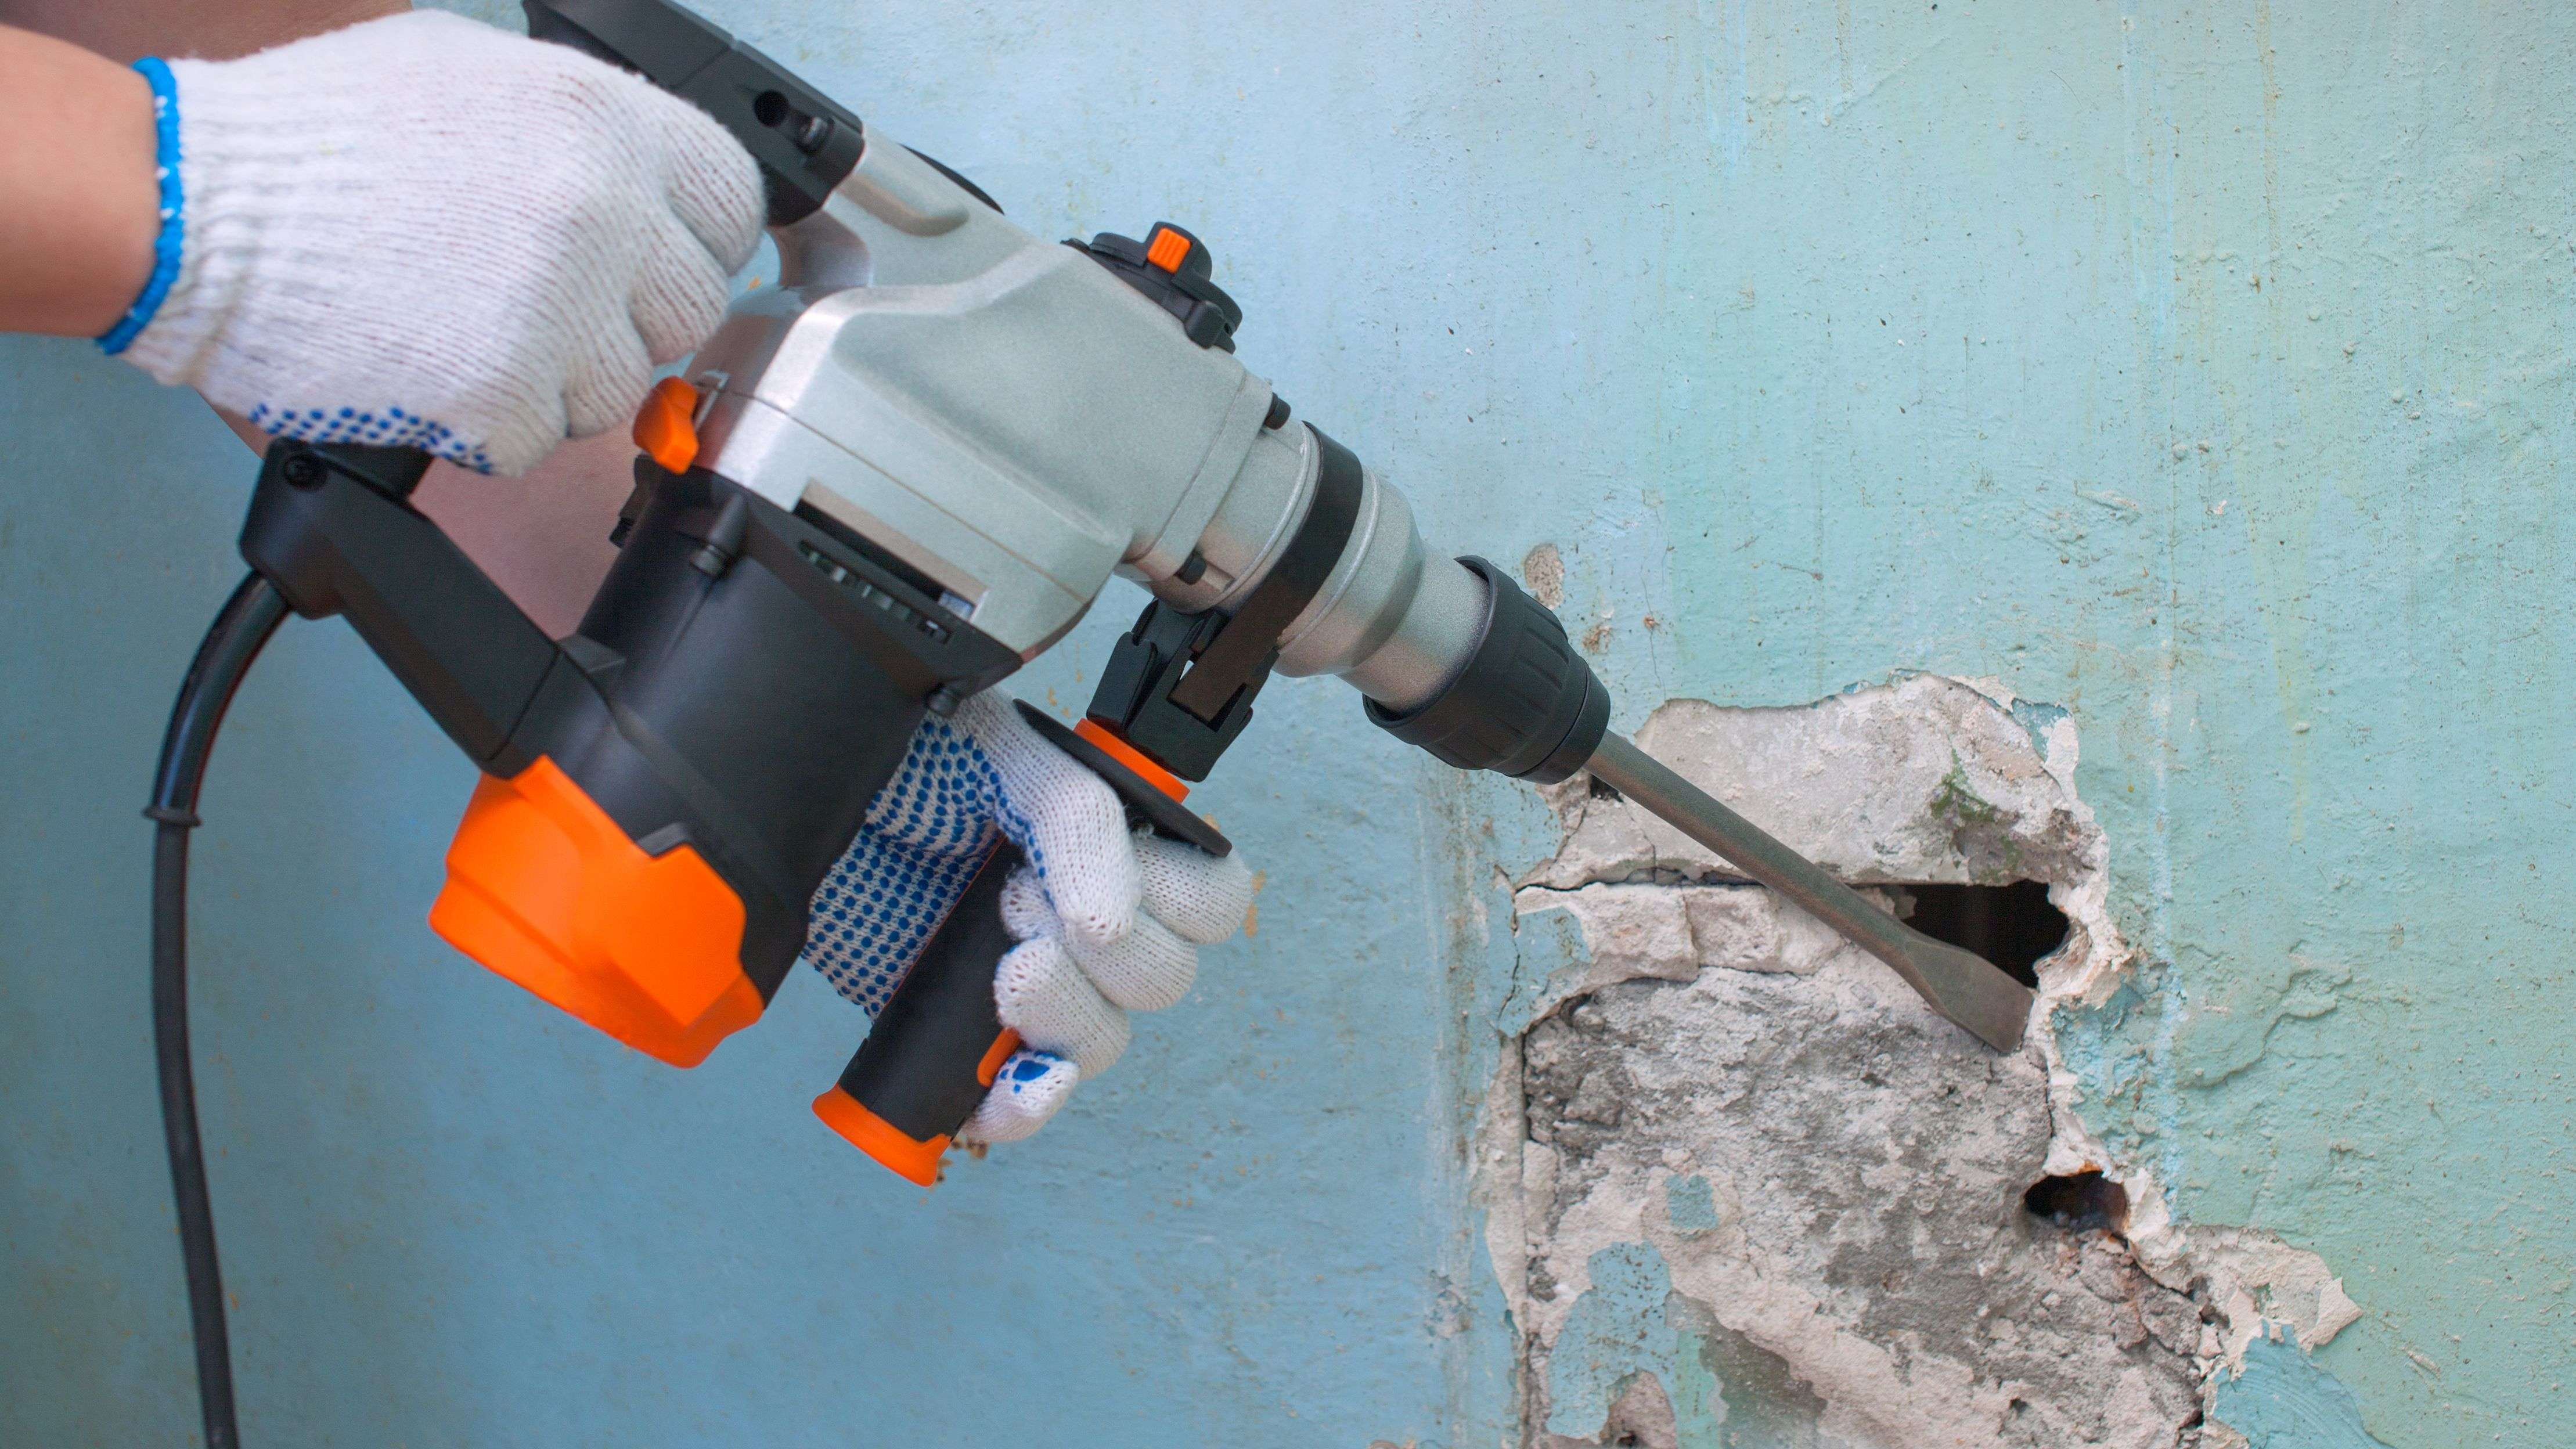 Rotary hammer buying guide